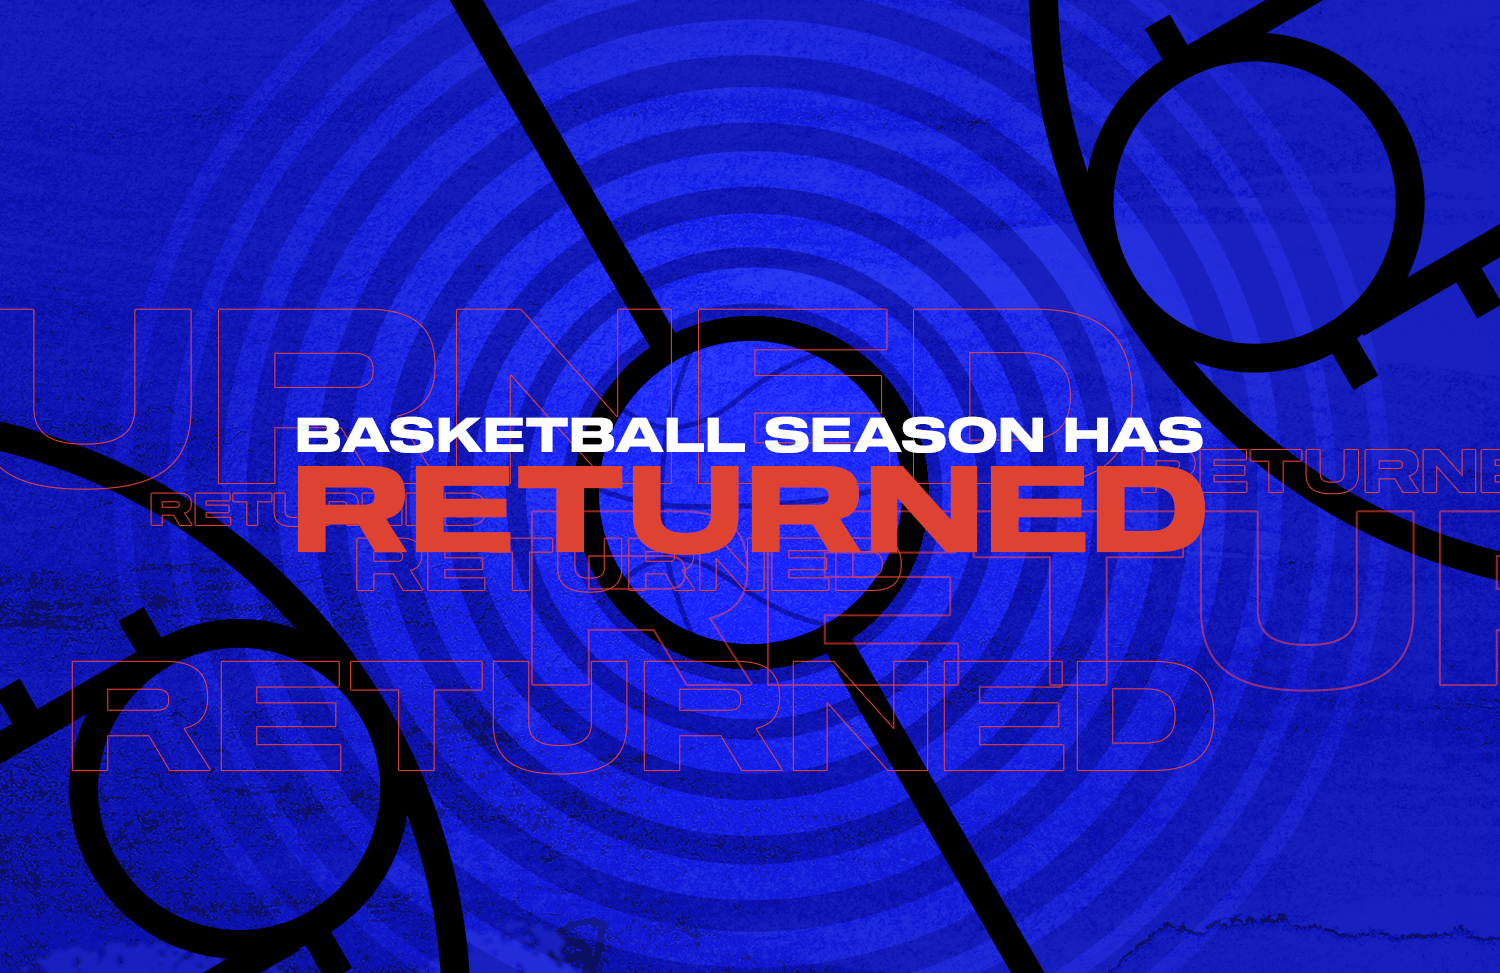 With a little over 2 months of off-season did you even get a chance to miss the NBA? We did. And we're celebrating its return in big ways.